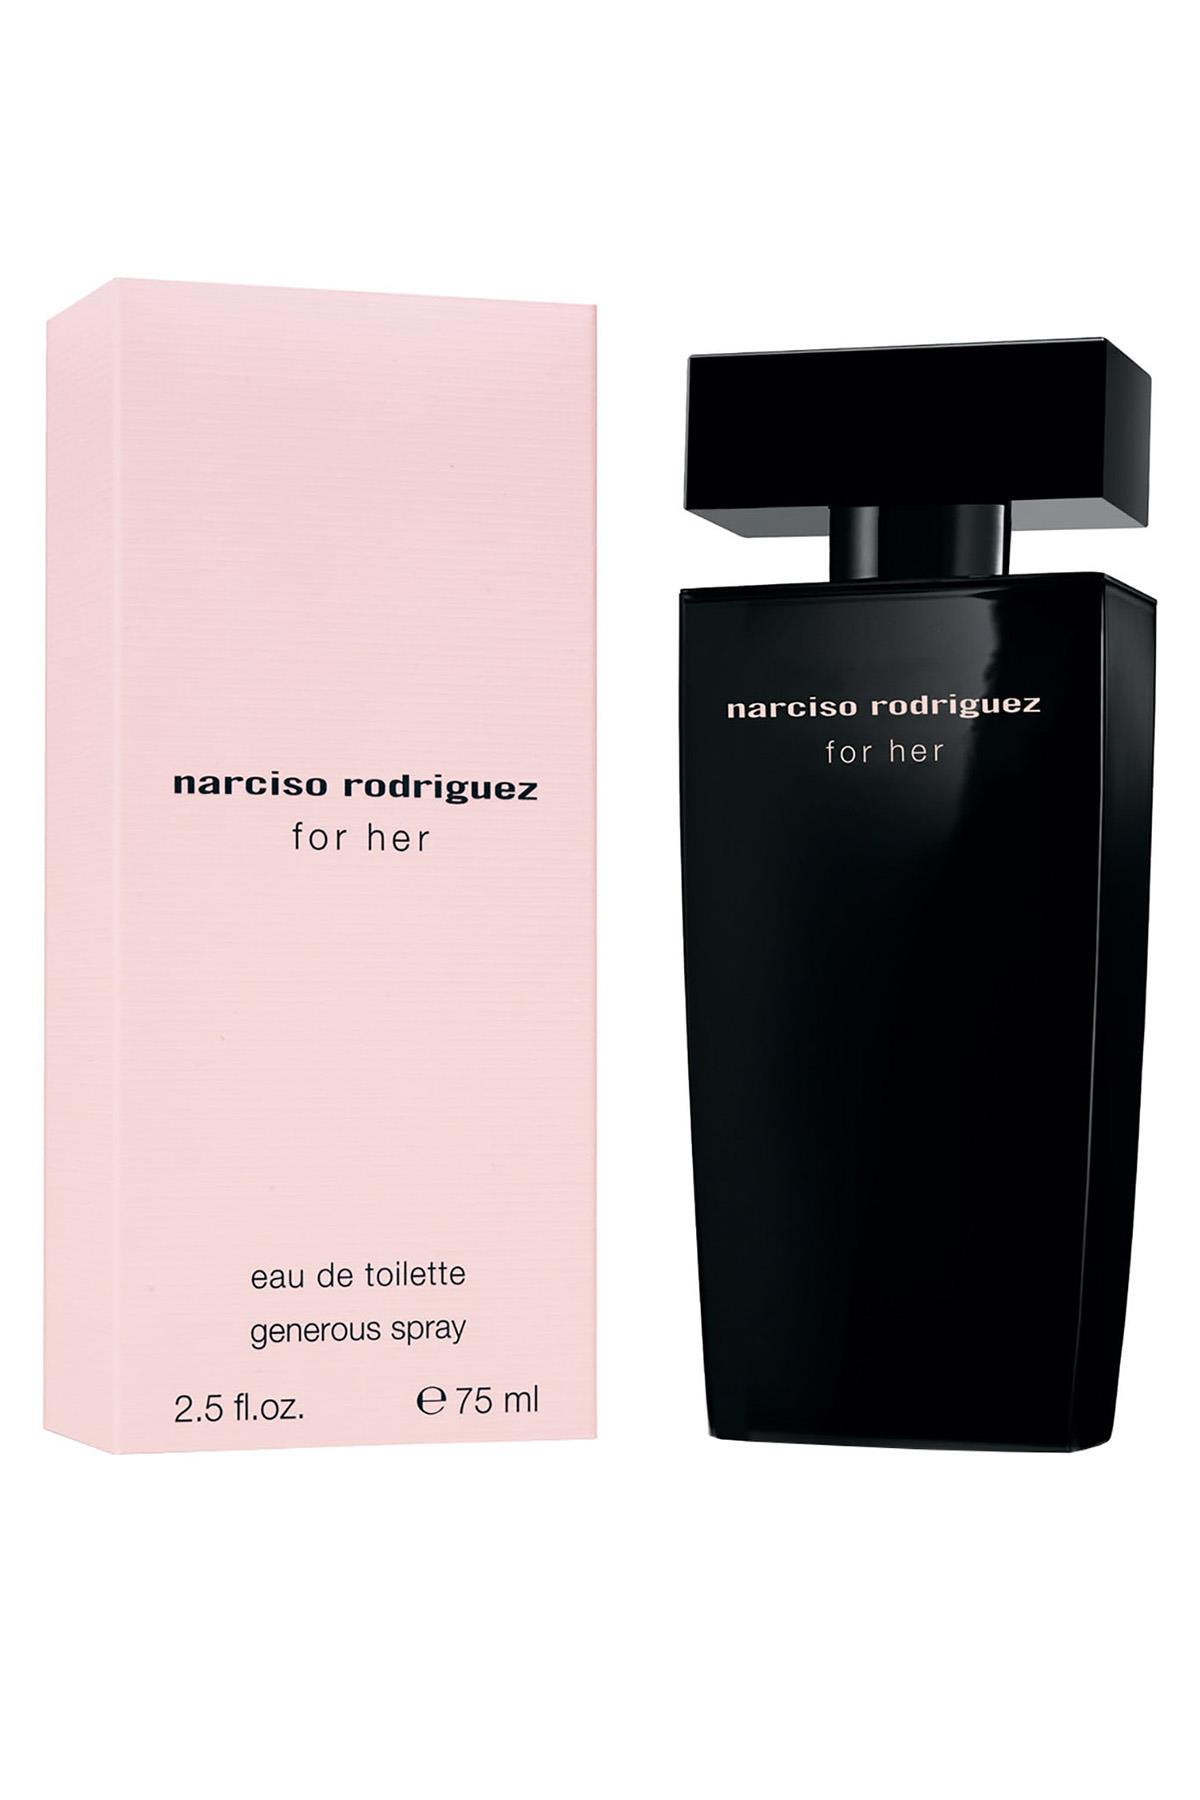 Narciso Rodriguez For Her EDT Generous Spray 75 ml